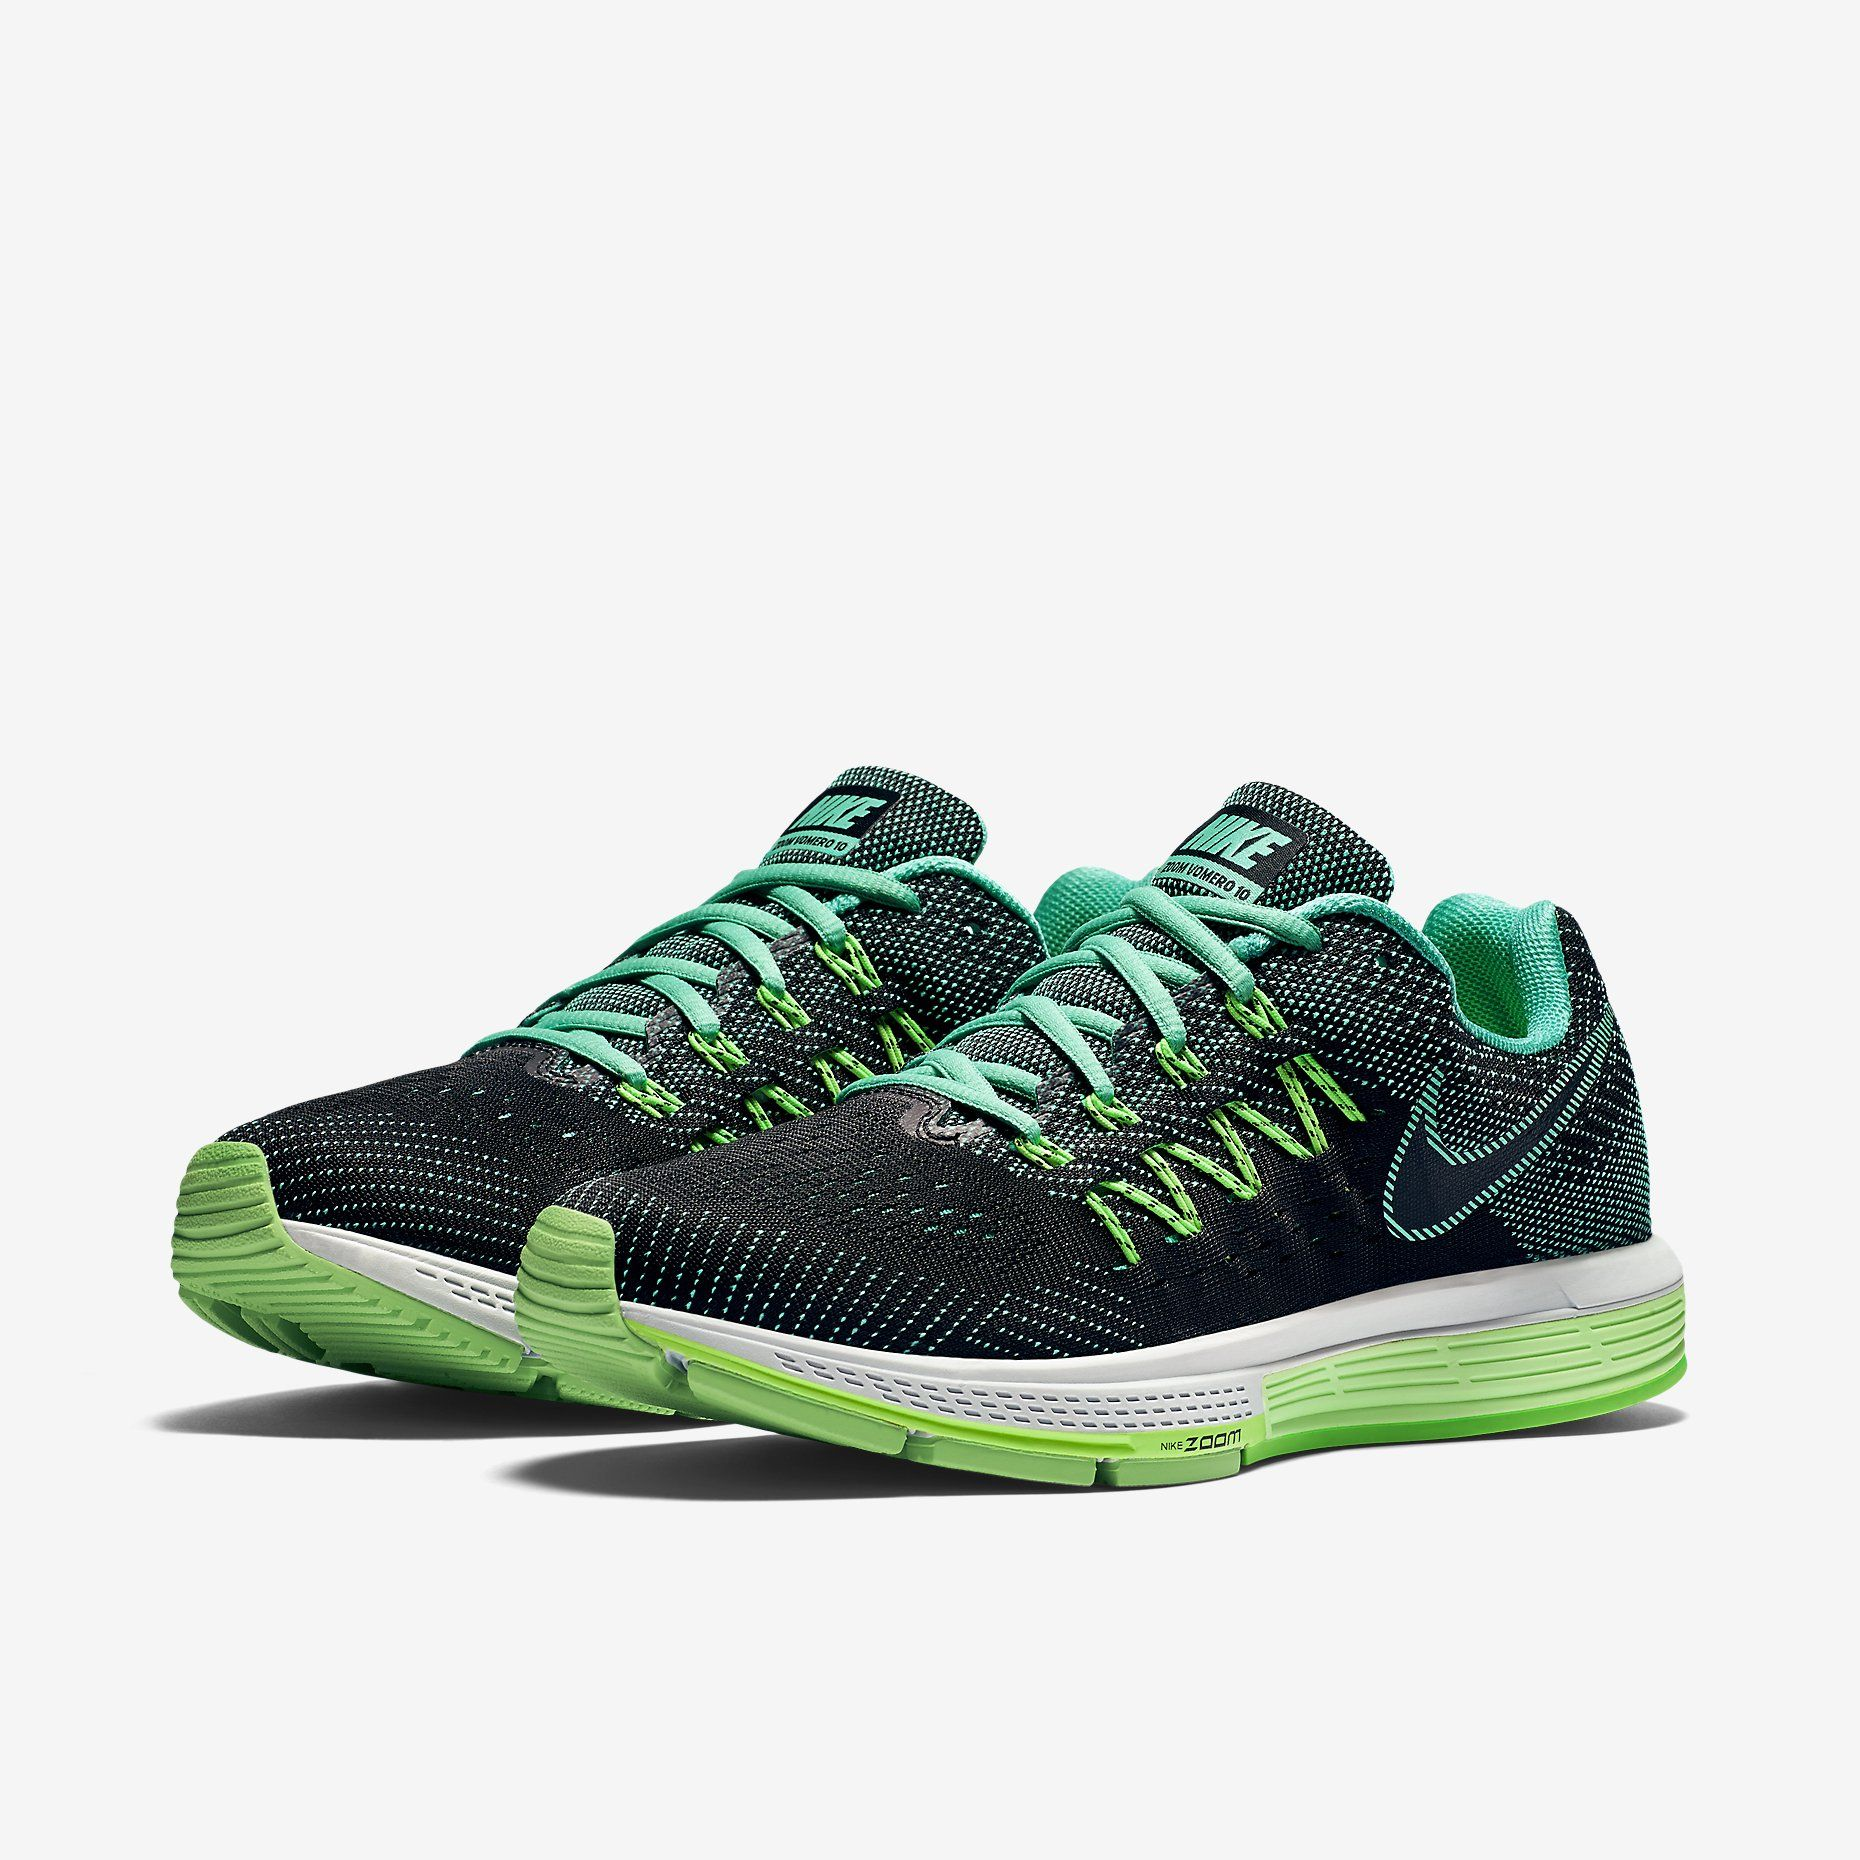 HAVE Nike Air Zoom Vomero 10 Womens Running Shoe